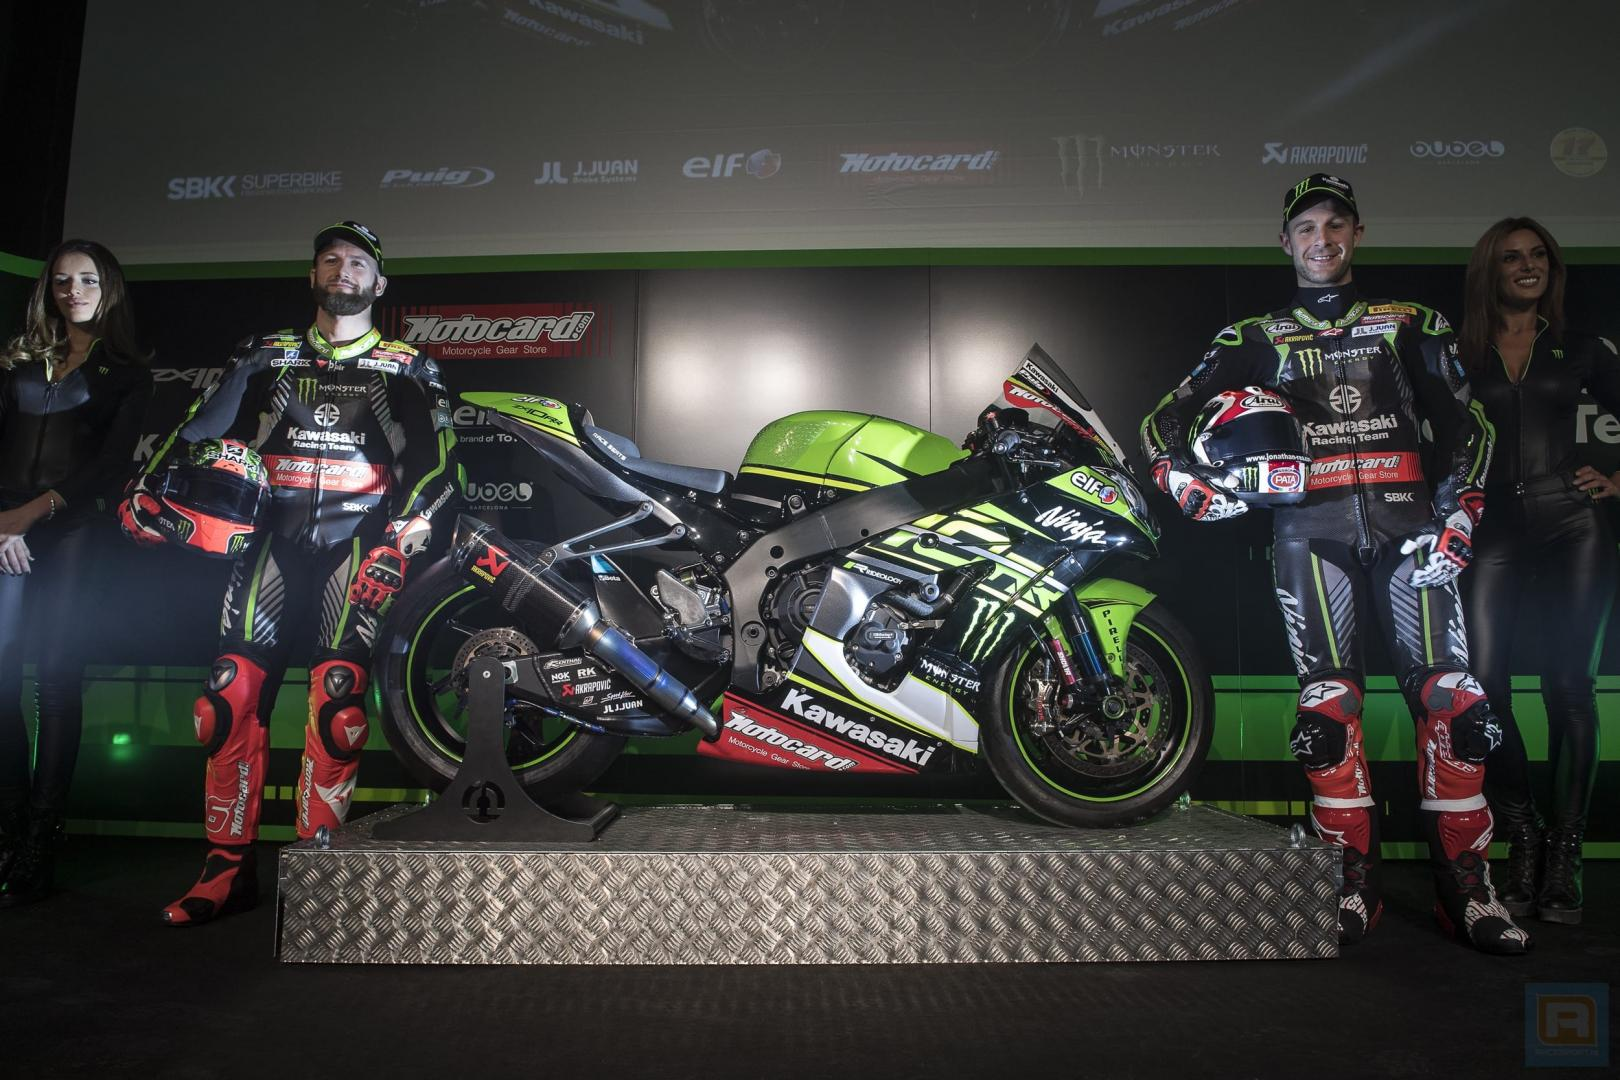 https://www.racesport.nl/wp-content/uploads/2018/02/hi_2018_WorldSBK_Kawasaki_Racing_Team_Team_Launch_DSC9868.jpg